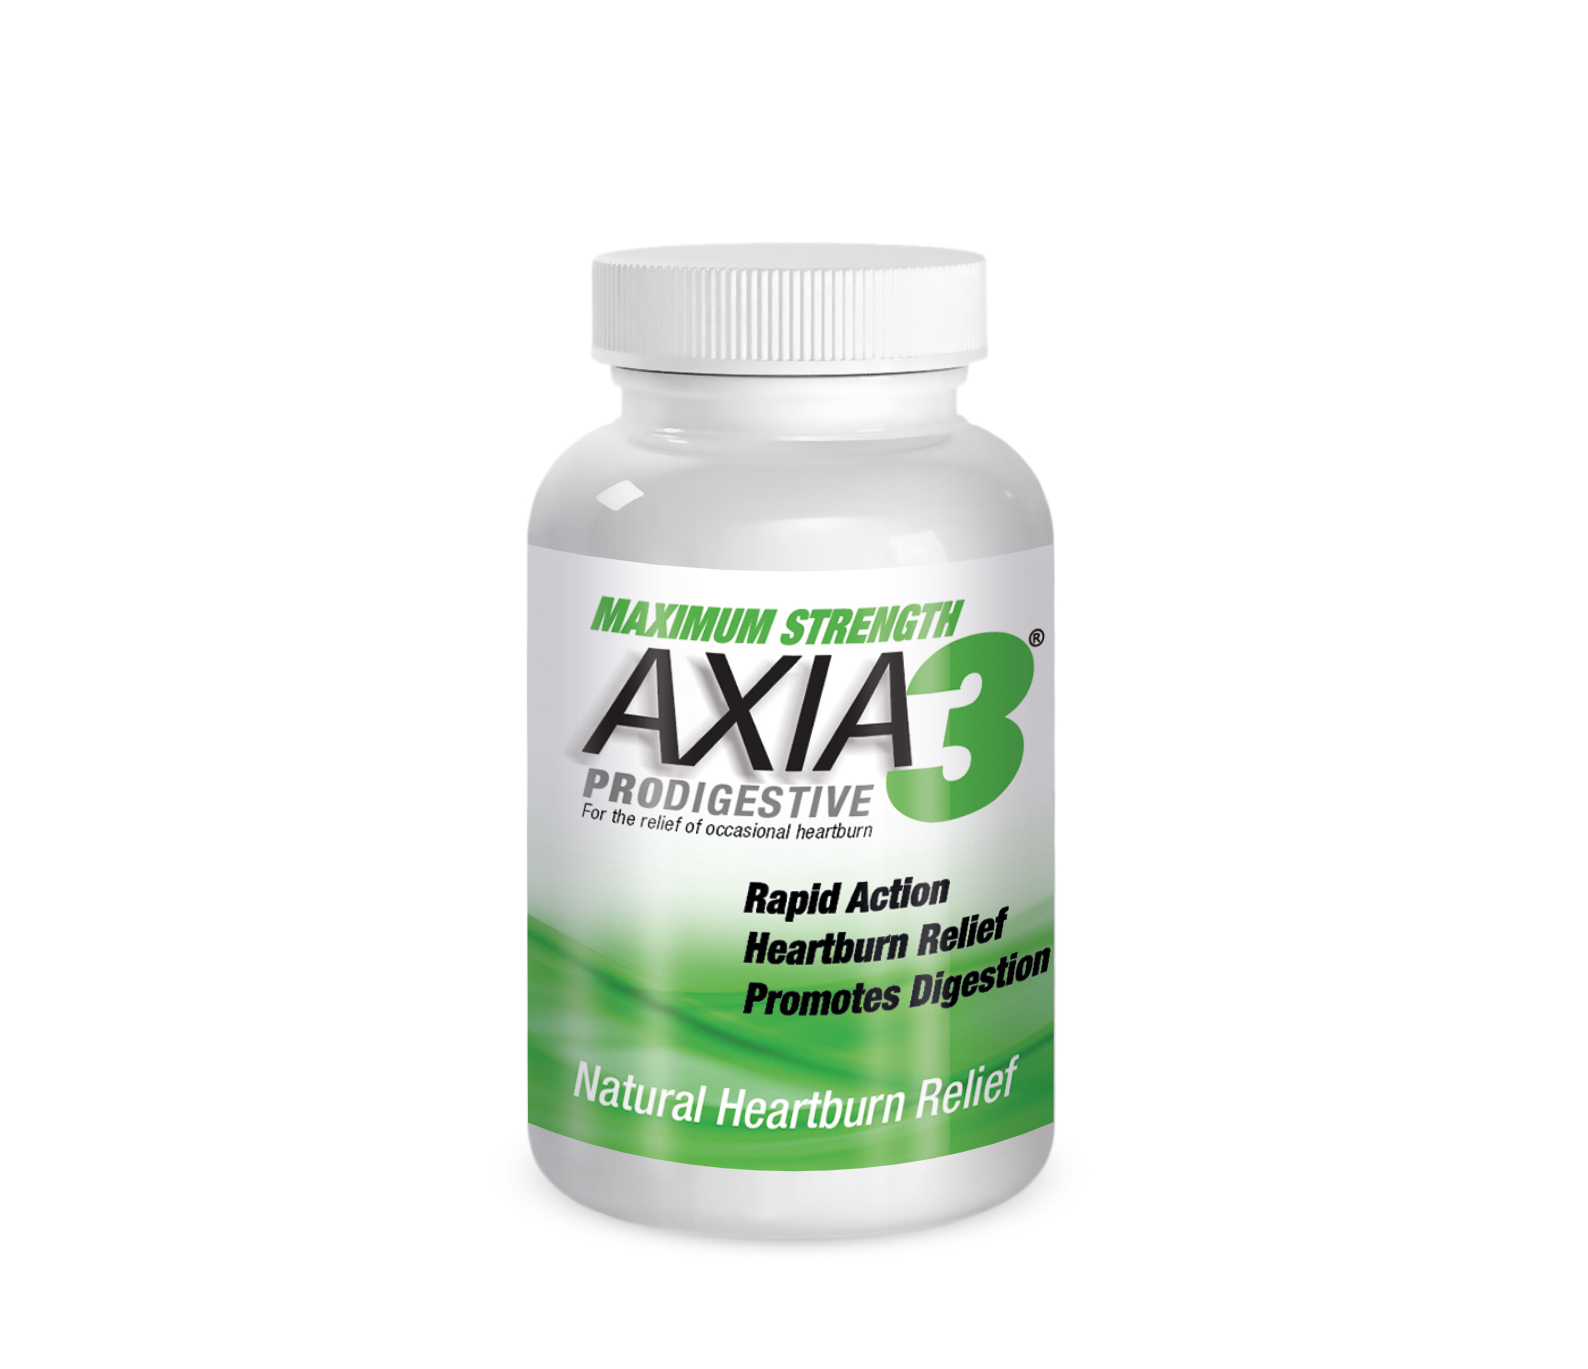 Axia Essentials: Maximum Strength Axia3 ProDigestive Heartburn Relief